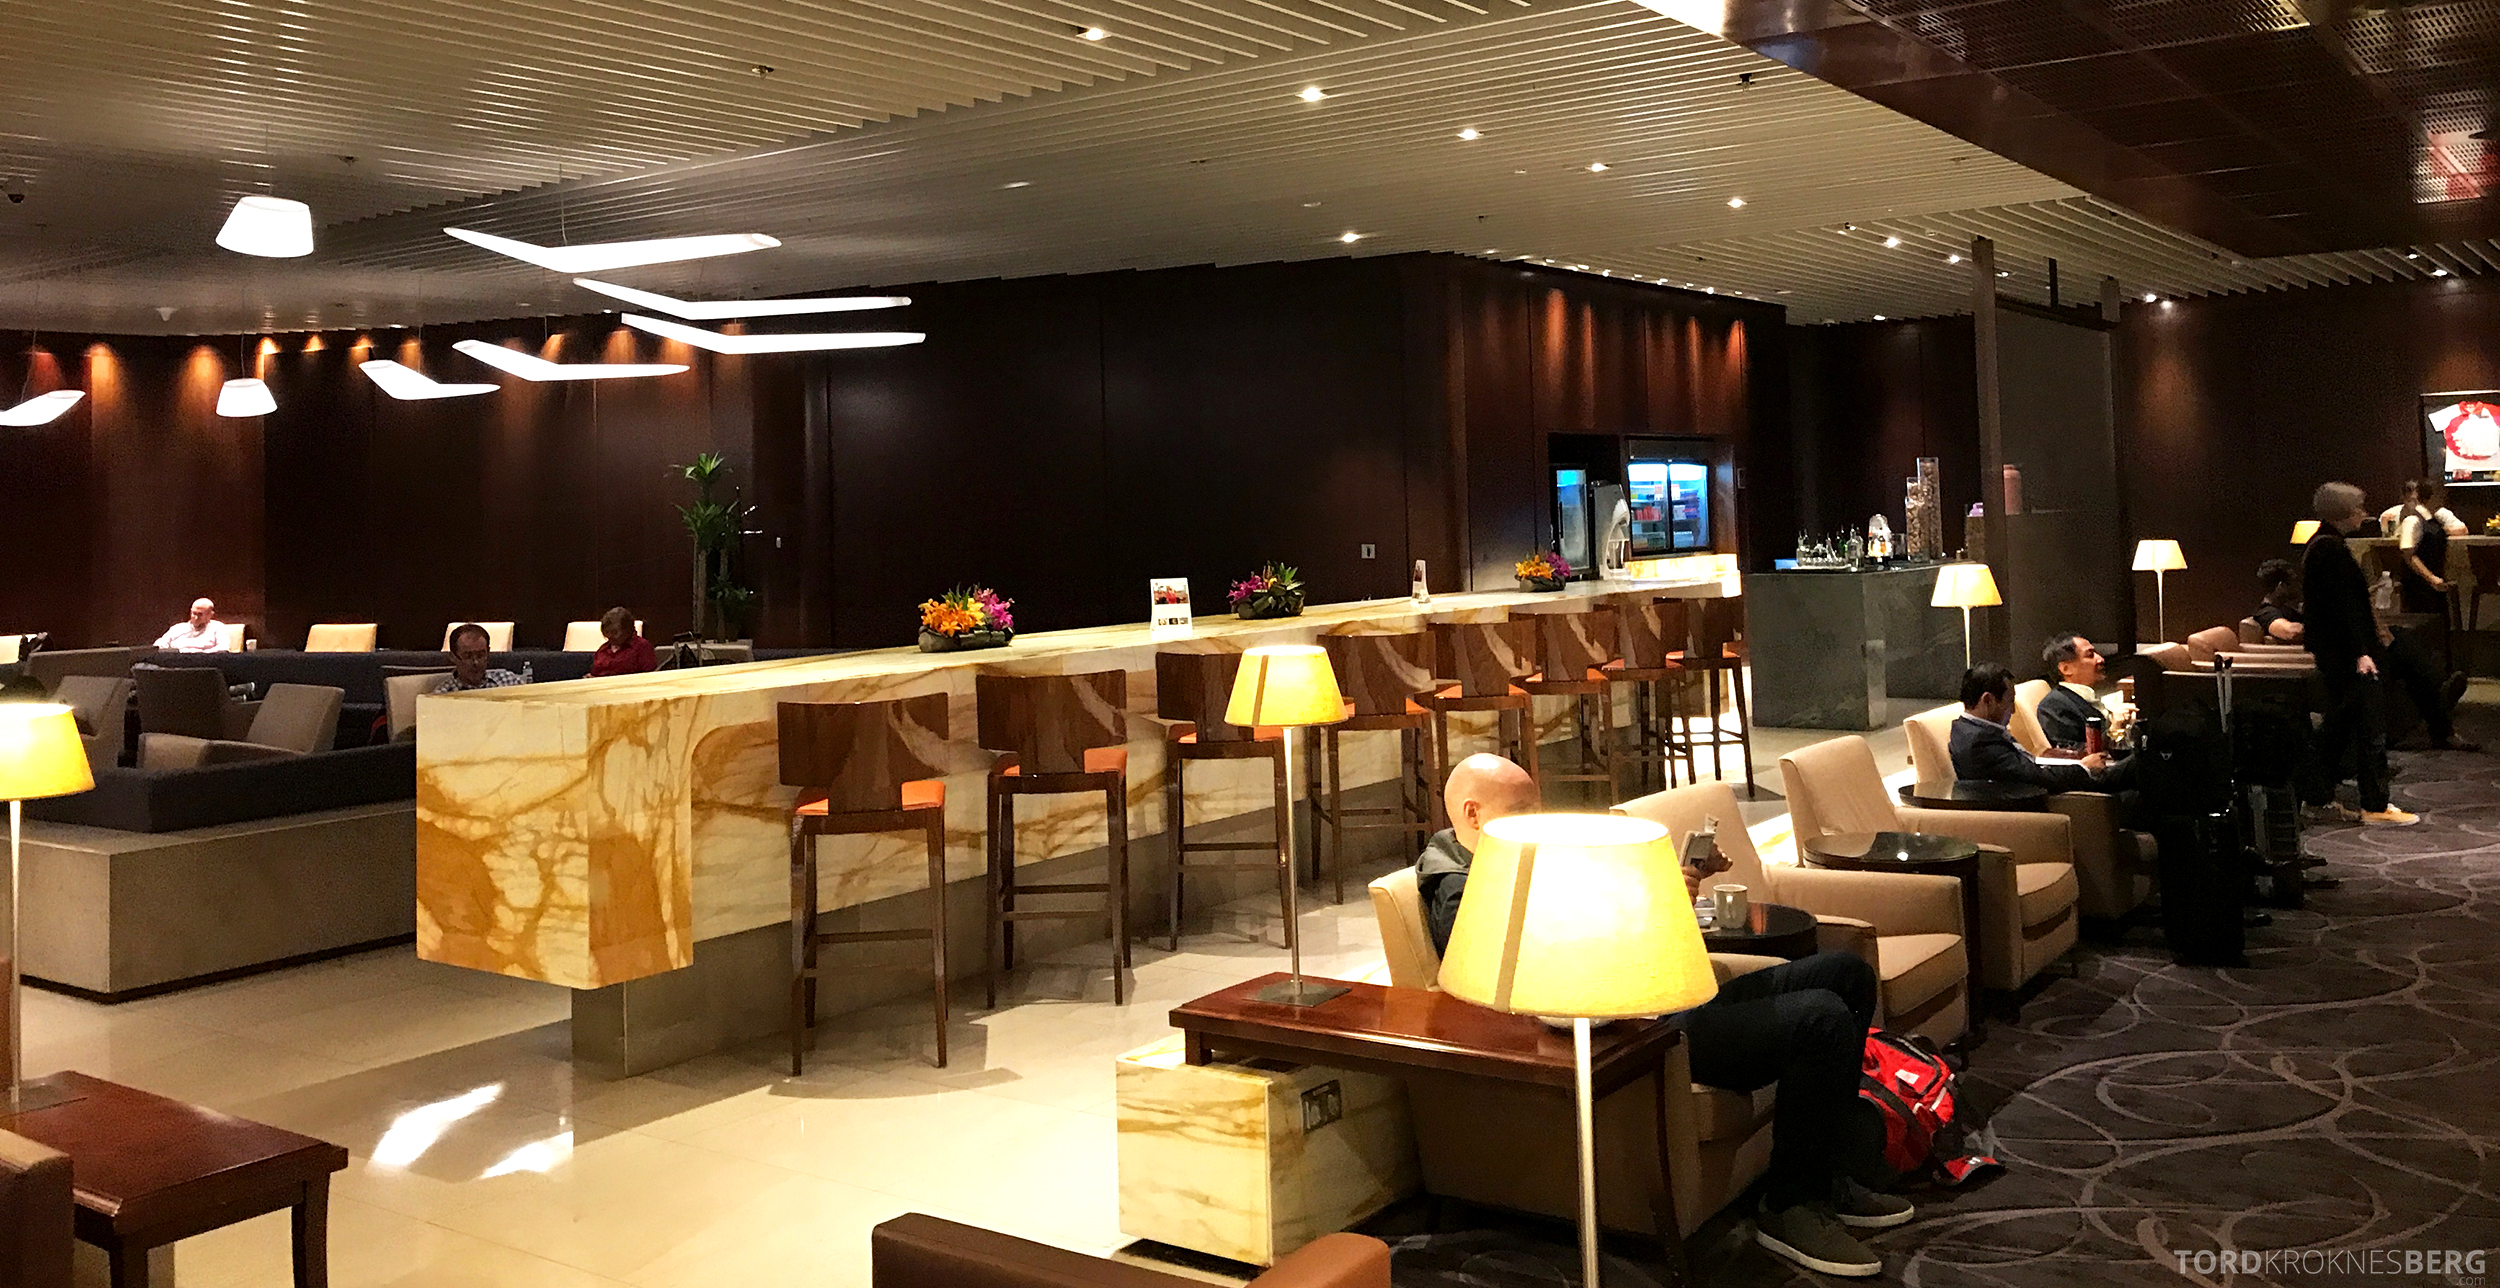 Singapore Airlines SilverKris Lounge bar